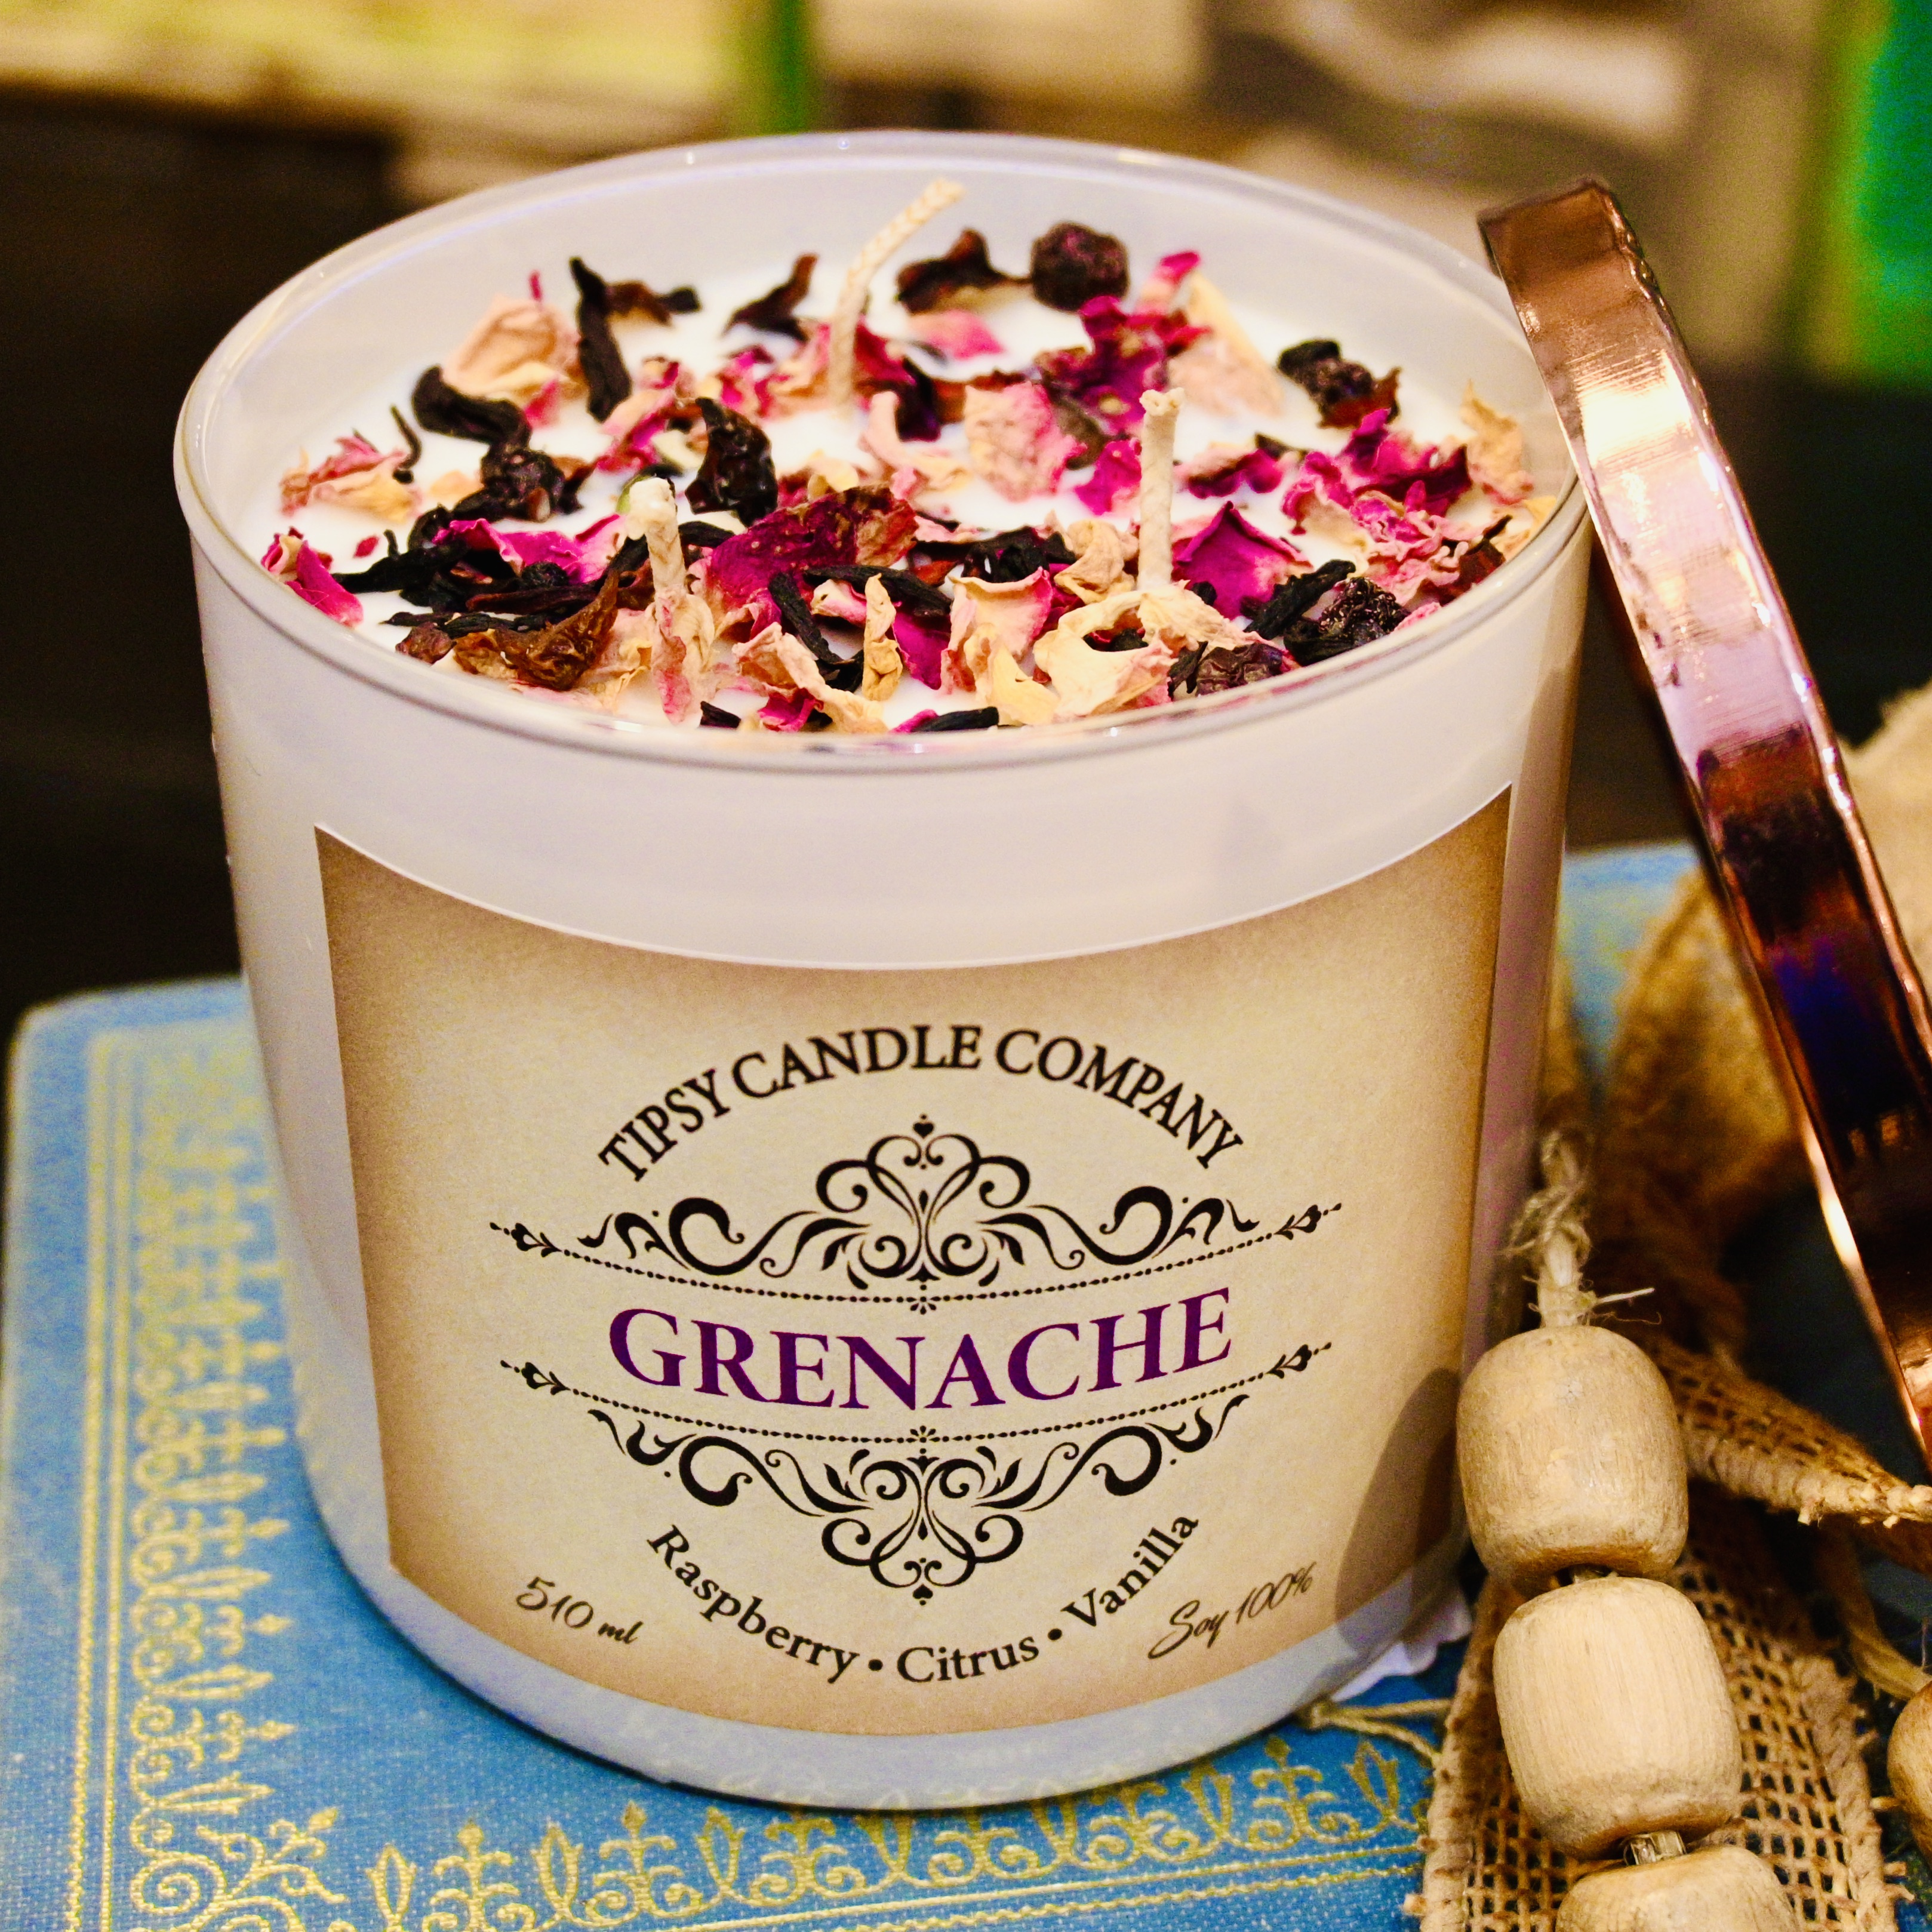 Grenache 3 wick Soy Candle made by Tipsy Candle Company